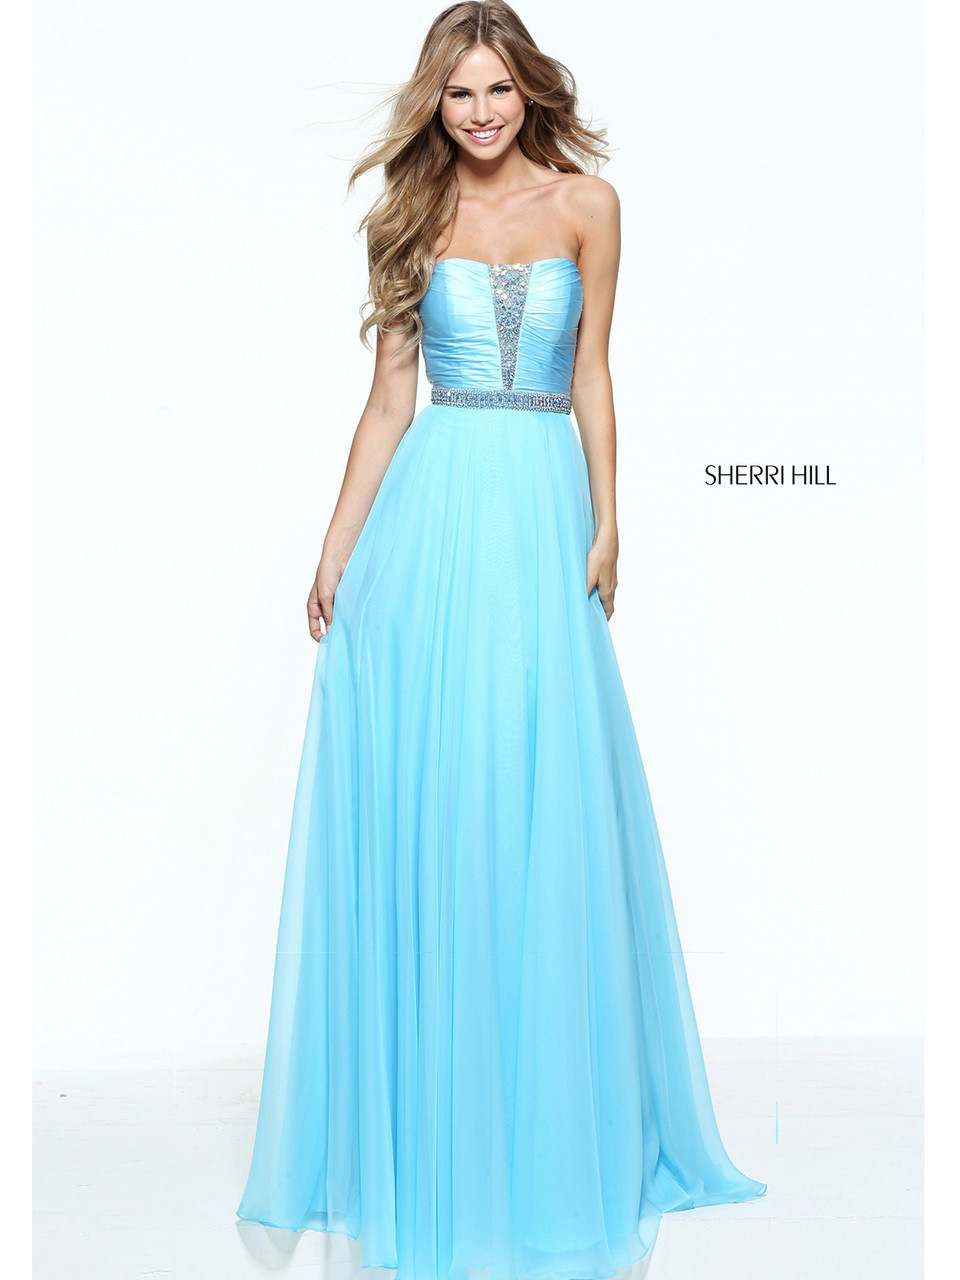 Sherri Hill 51002 A-Line skirt Prom Dress | PromHeadquarters.com